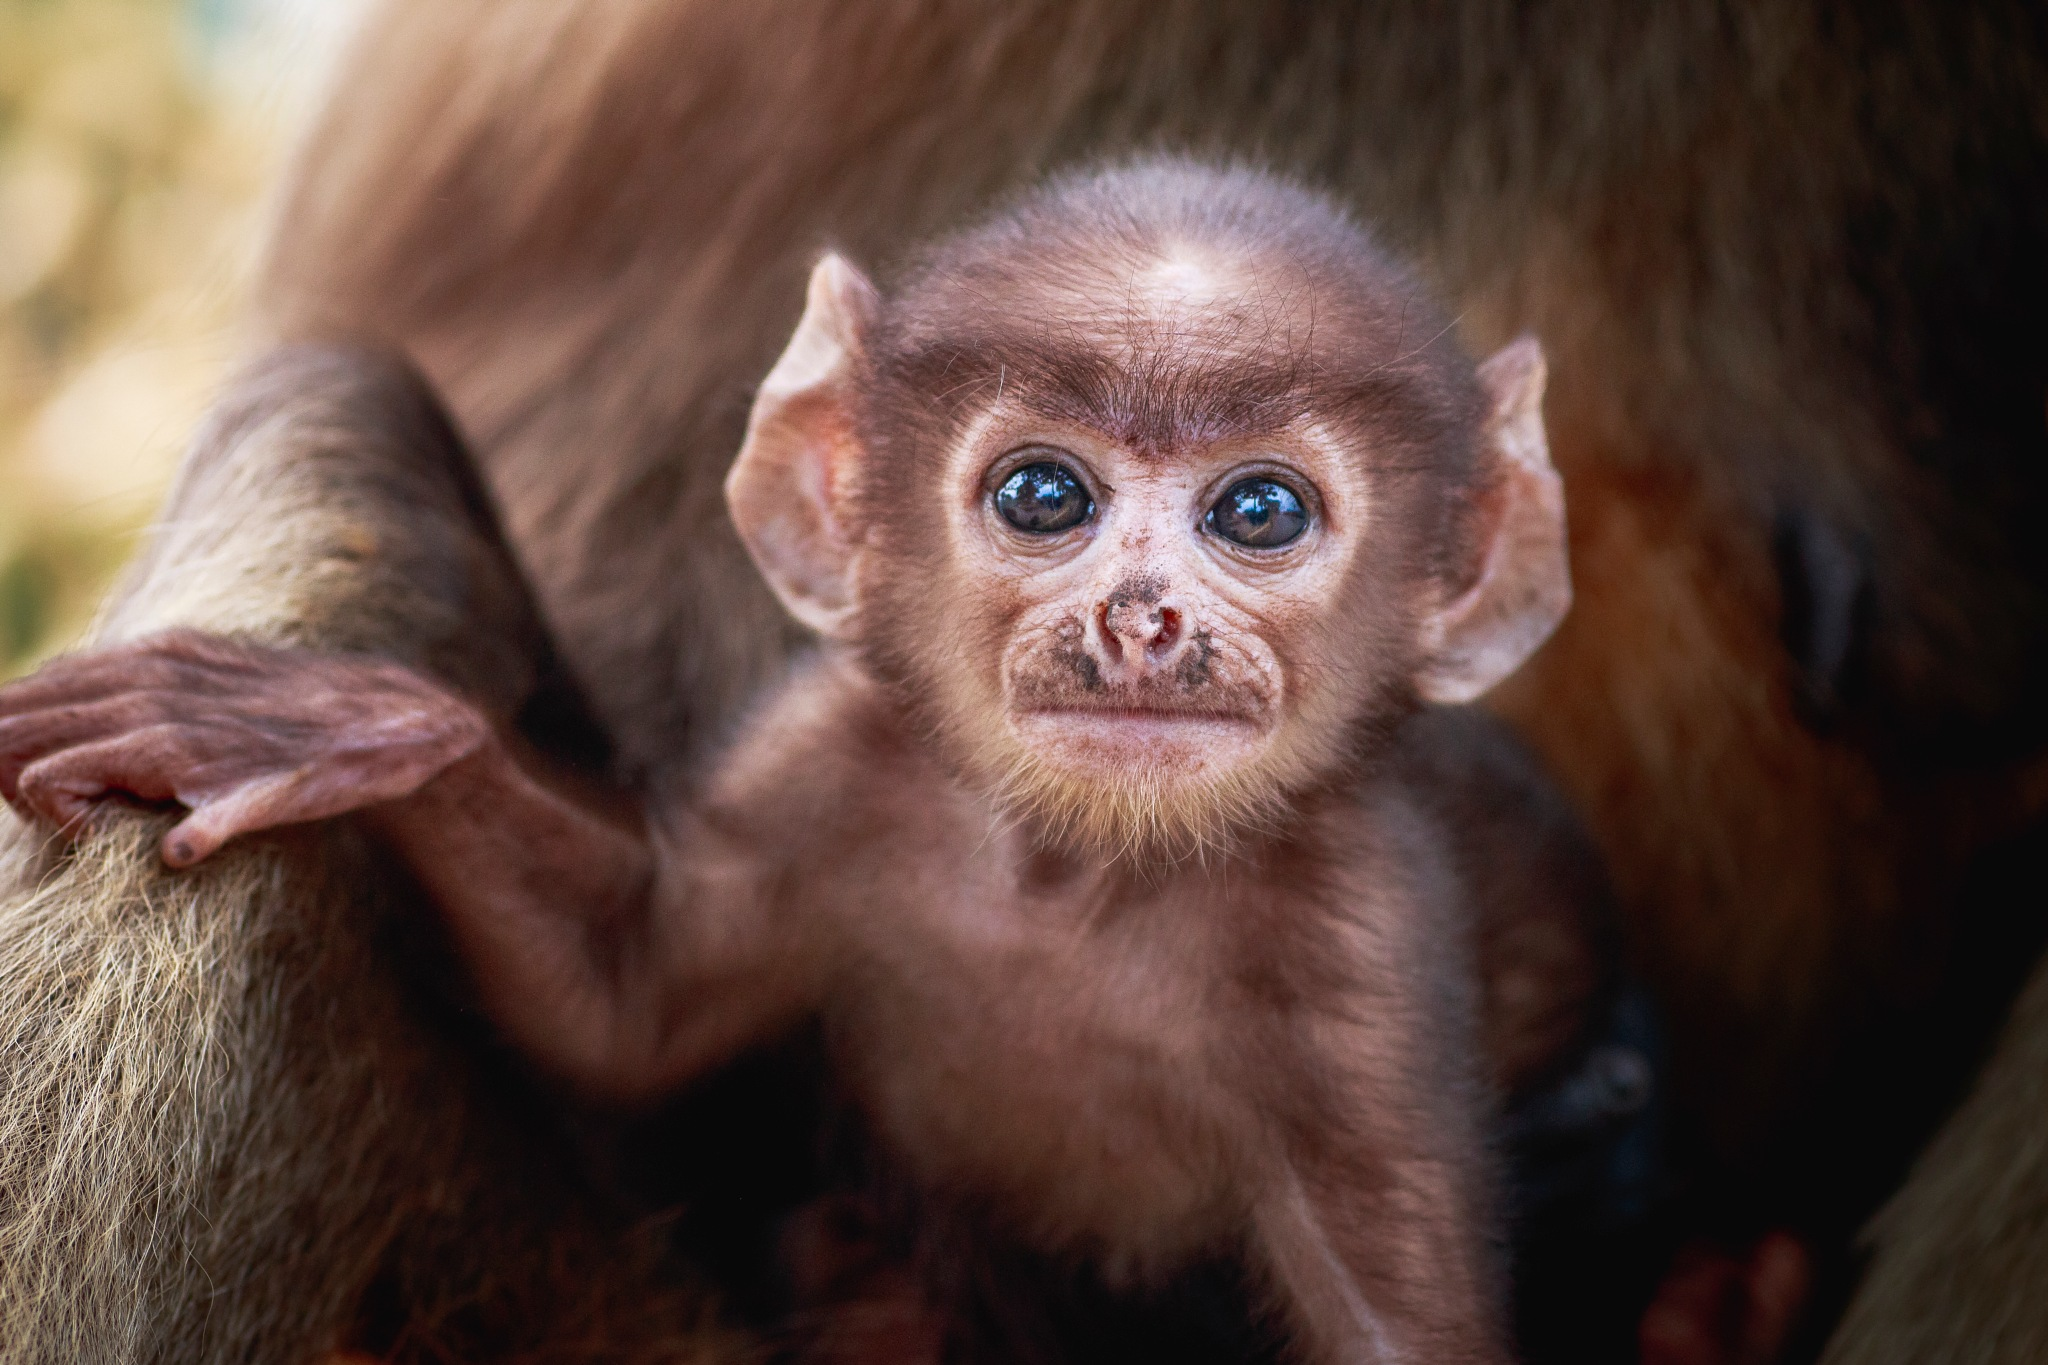 Infant Monkey by Titas Ghosh